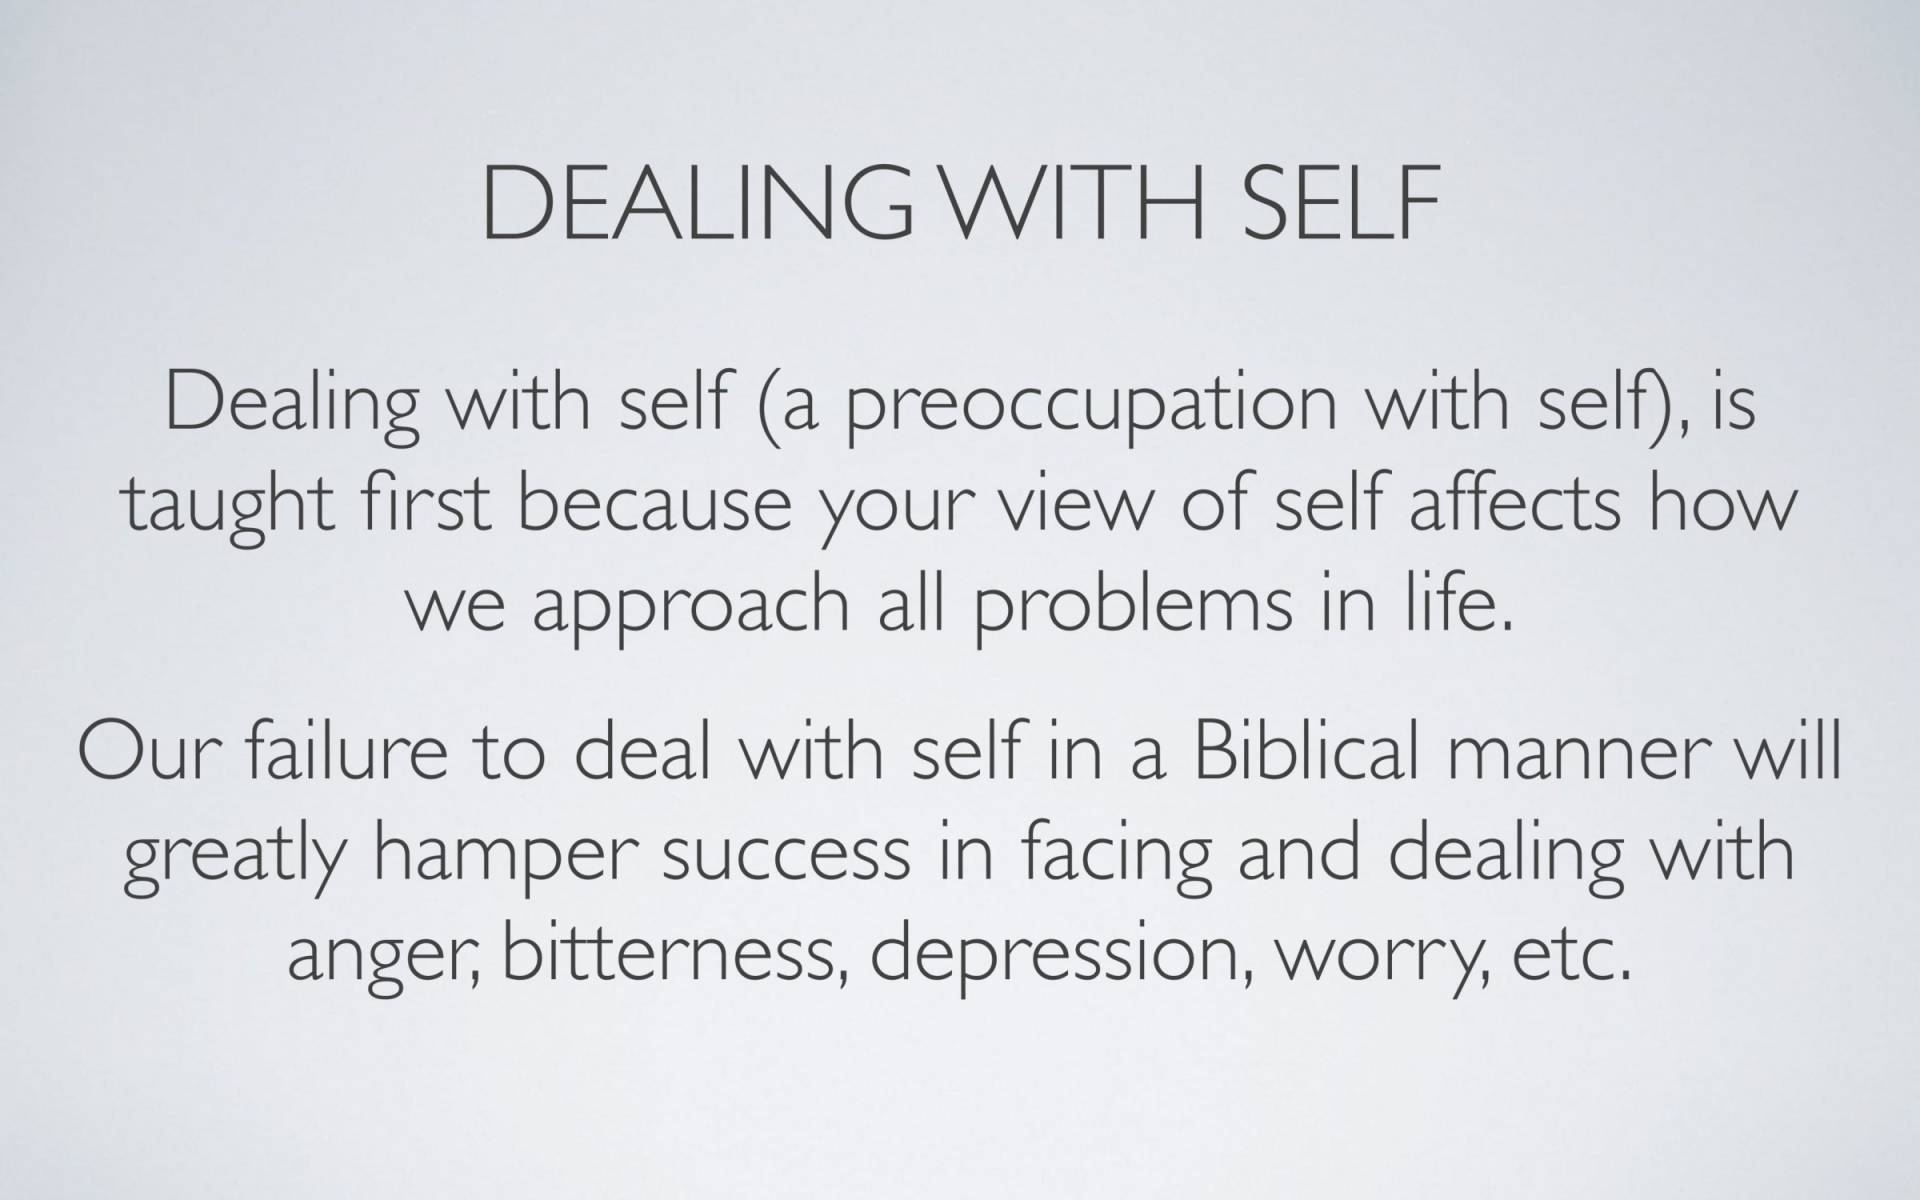 BC&D-28 - Lesson 9-1 - Dealing With Self-07